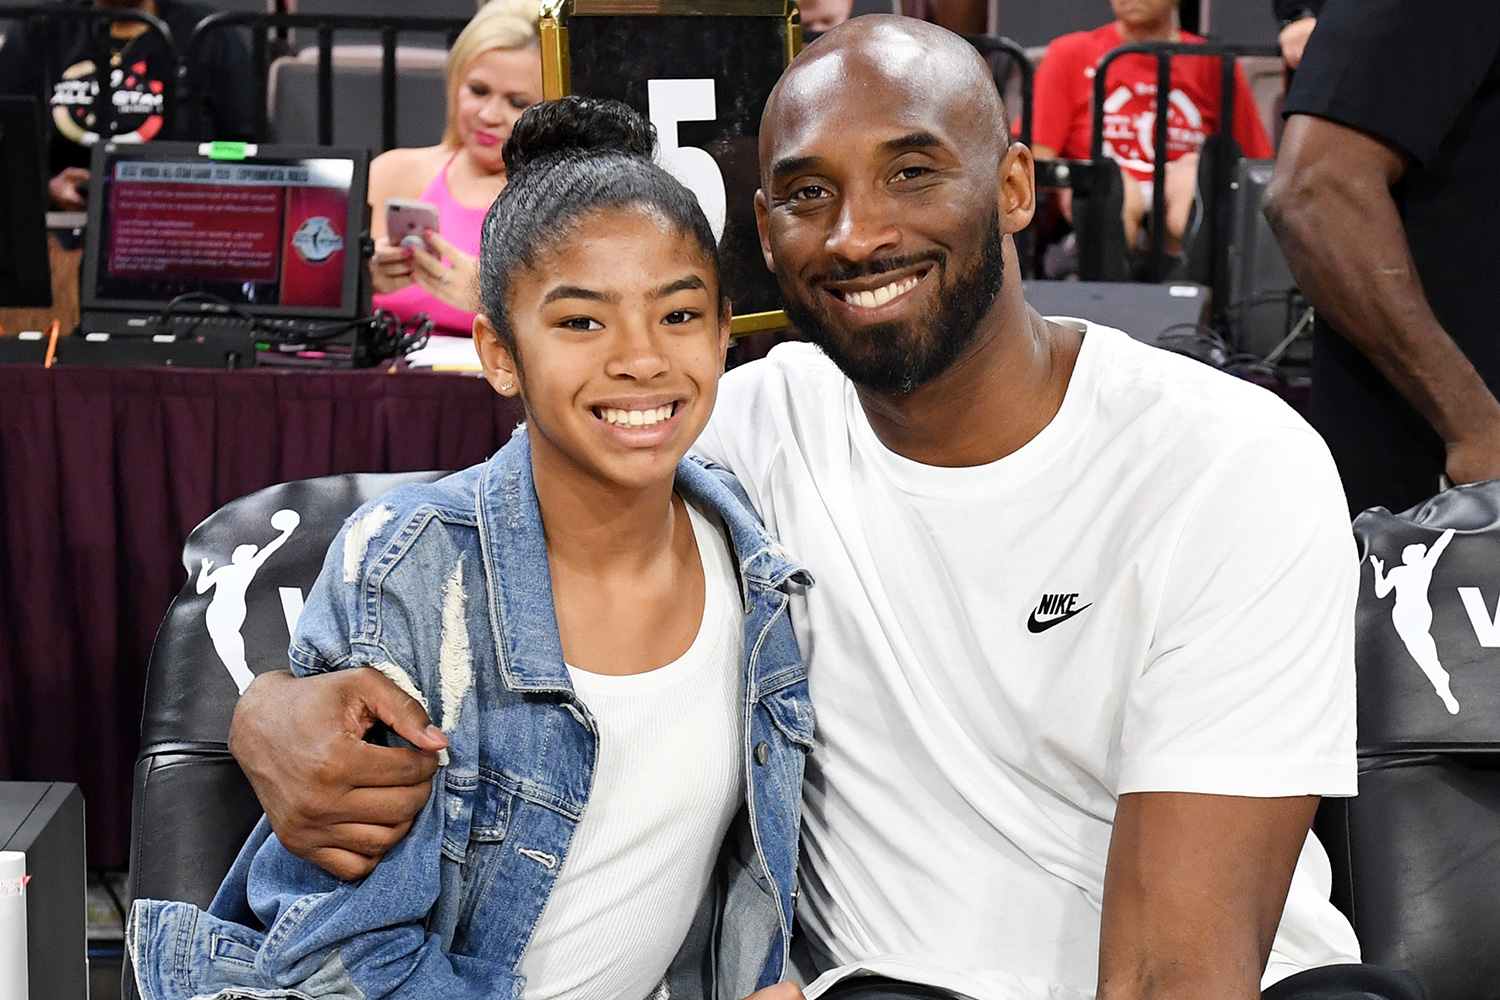 Gianna Bryant and her father, former NBA player Kobe Bryant, attend the WNBA All-Star Game 2019 at the Mandalay Bay Events Center on July 27, 2019 in Las Vegas, Nevada